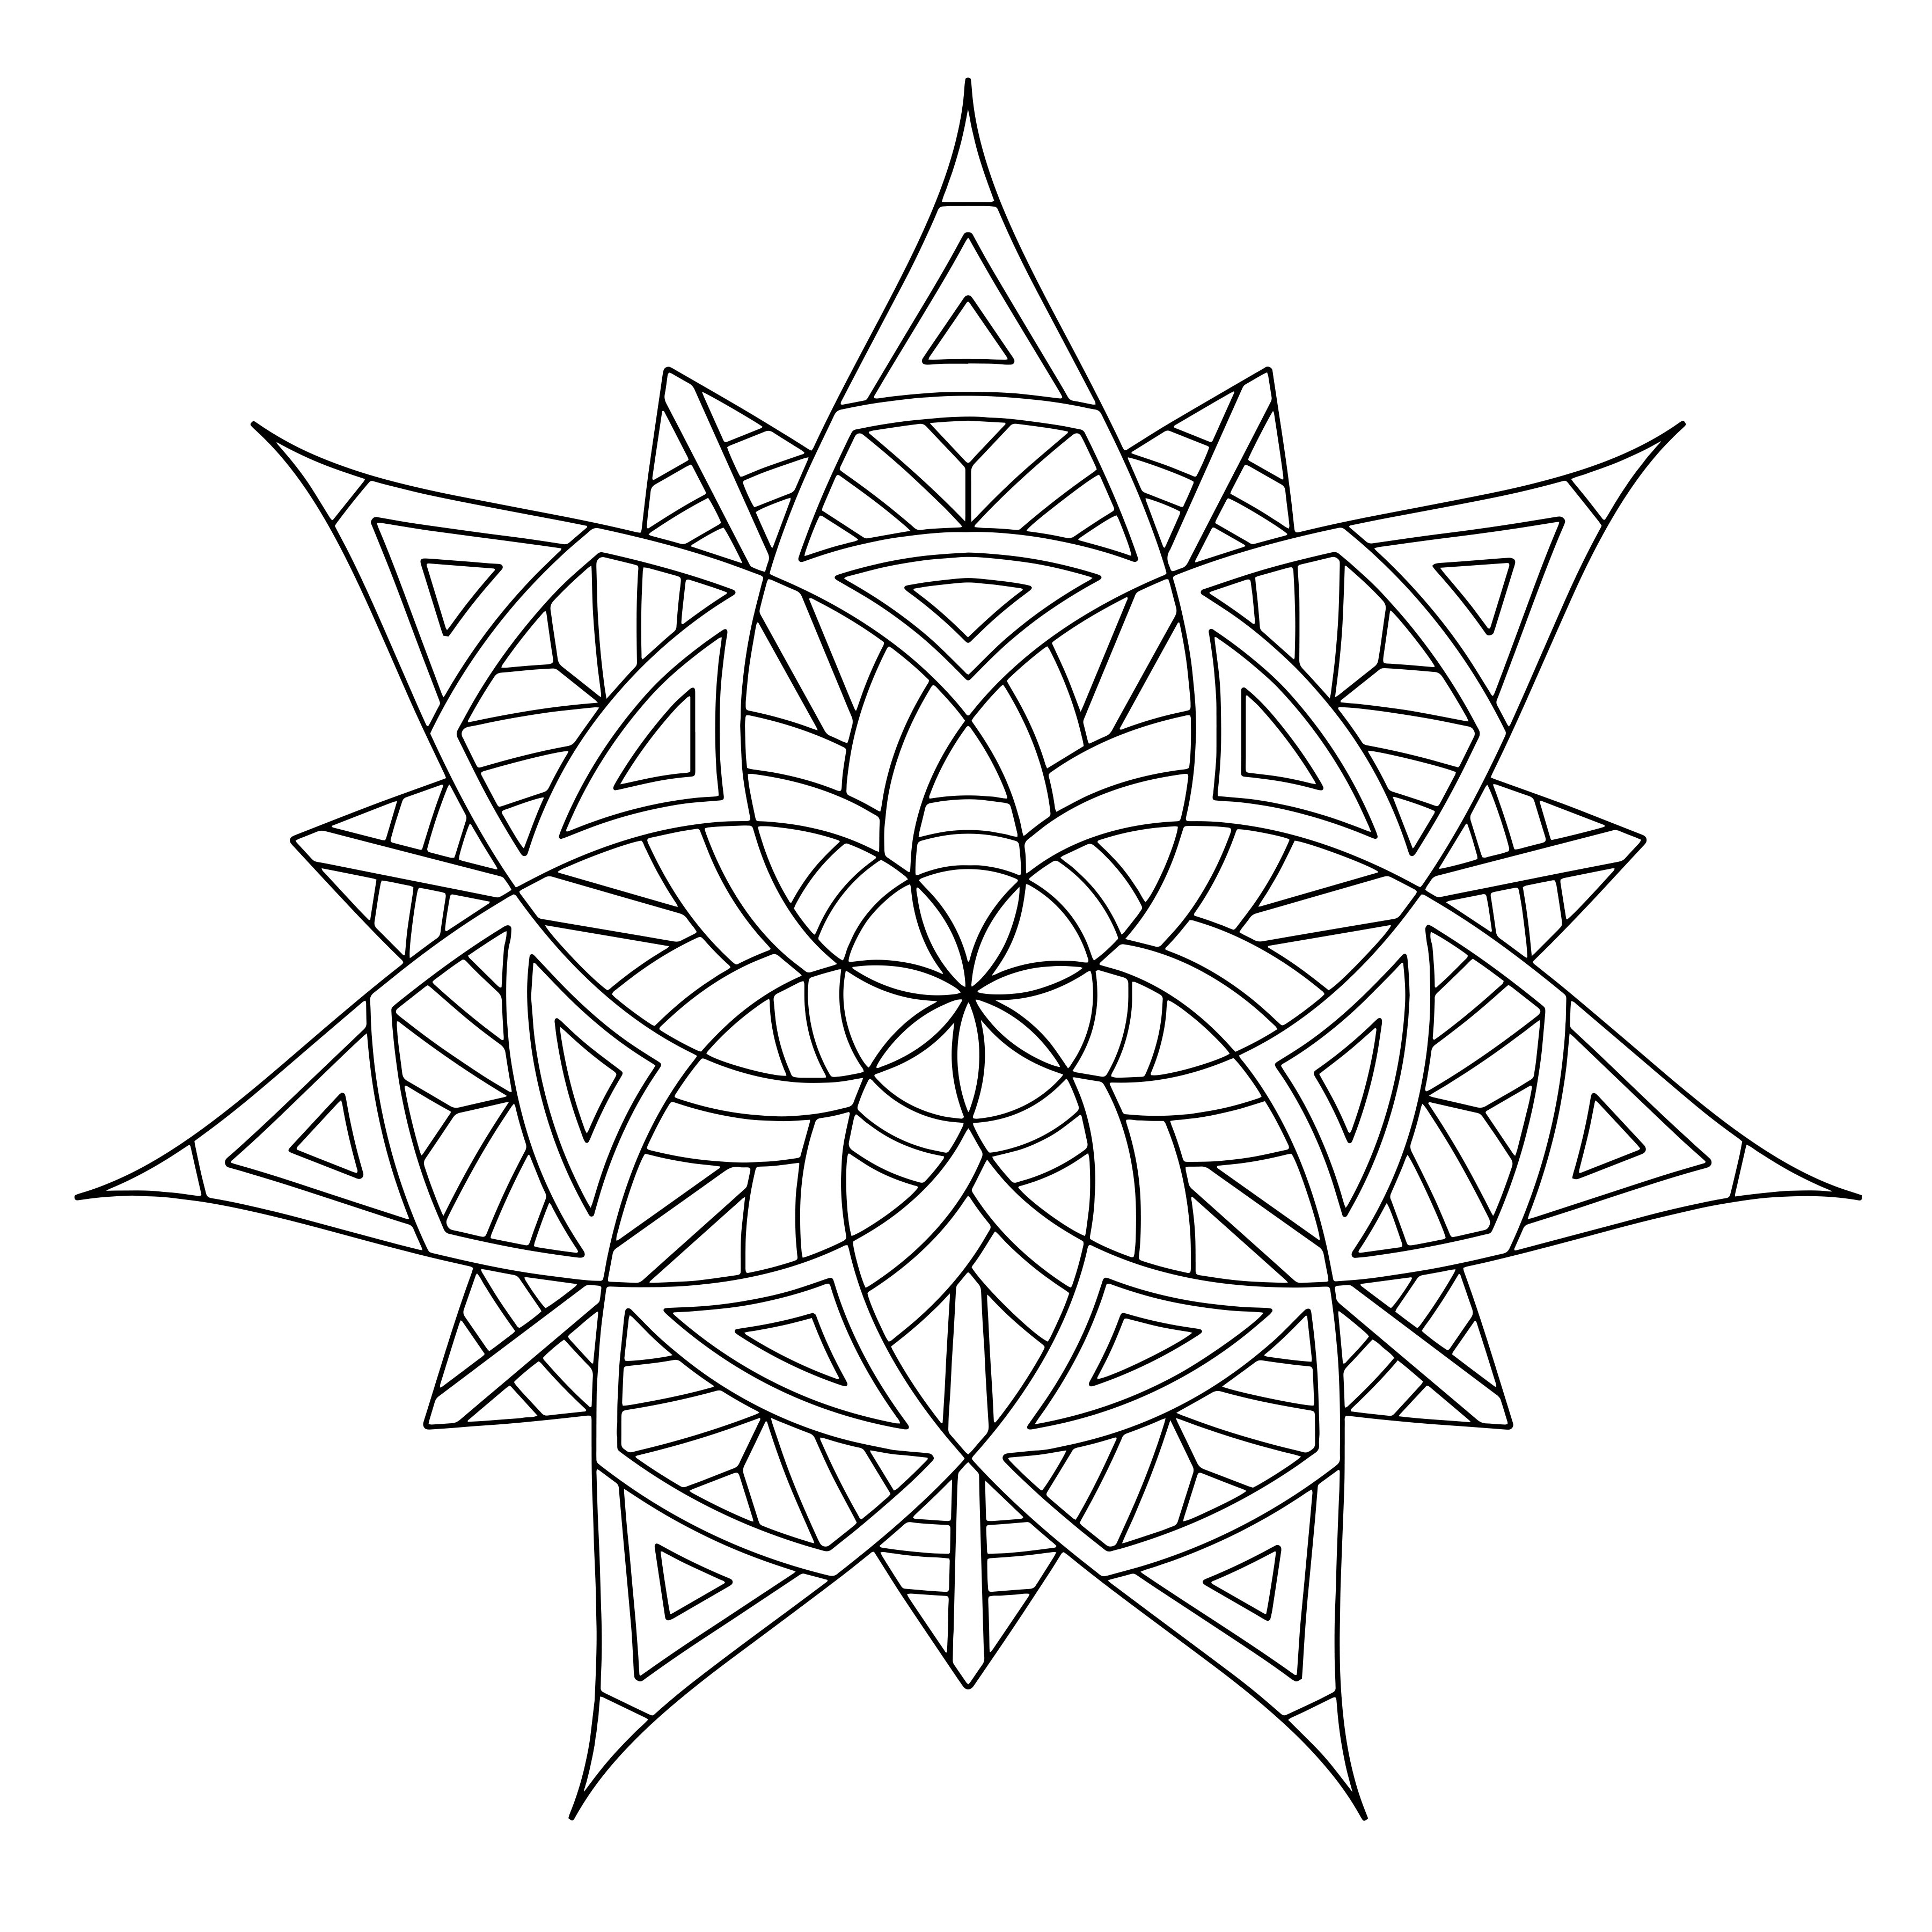 pattern coloring pages for kids free printable geometric coloring pages for kids pattern coloring pages kids for